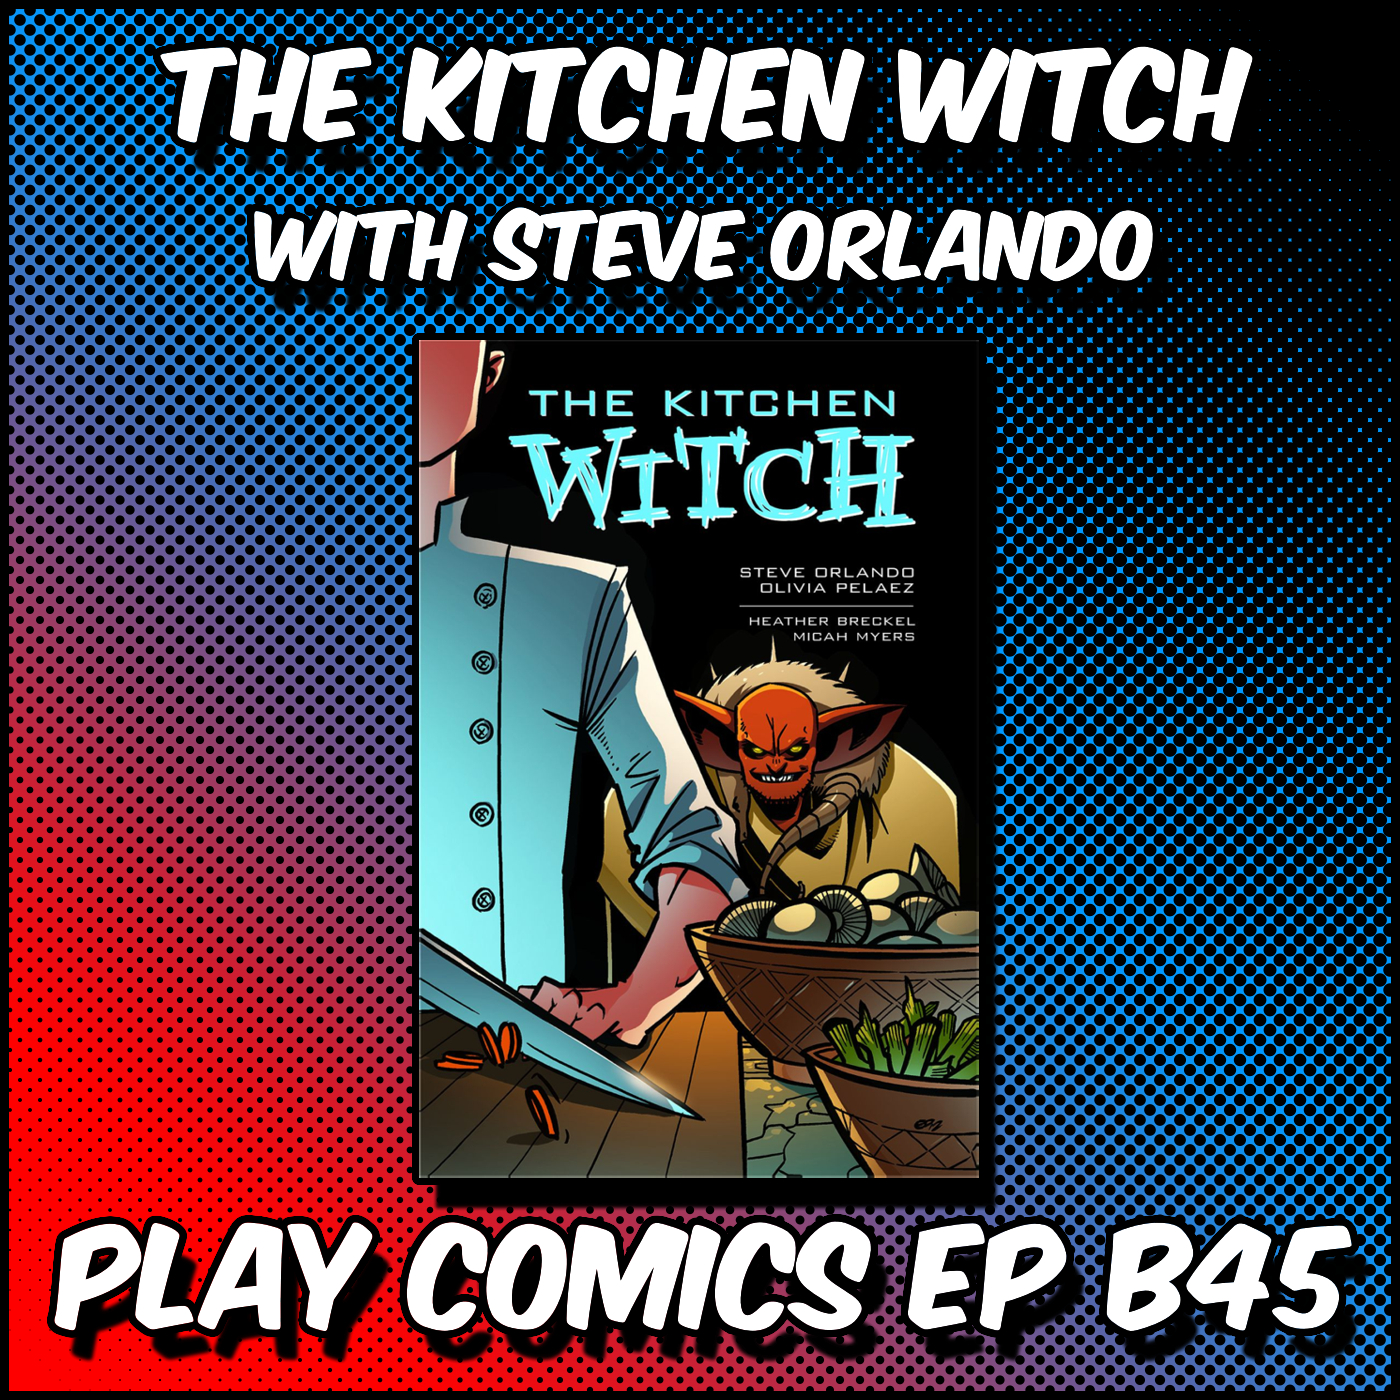 The Kitchen Witch with Steve Orlando